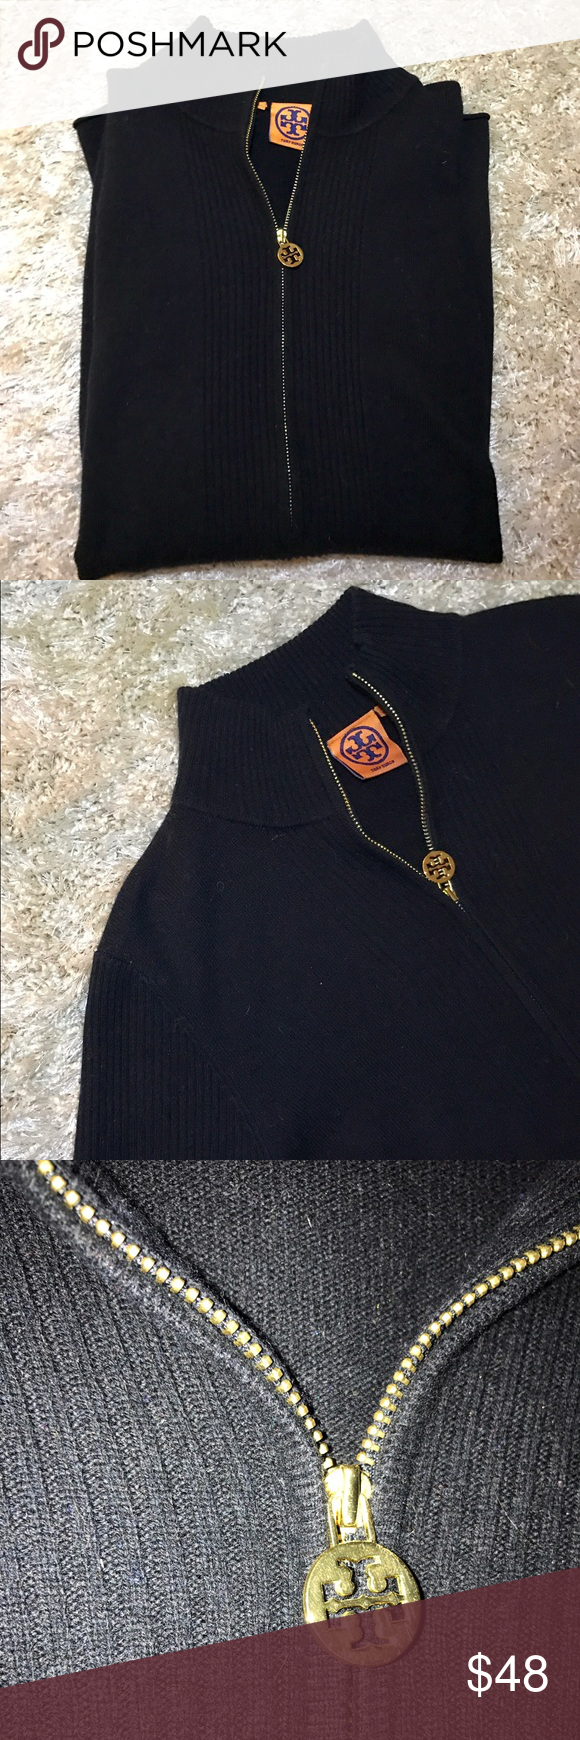 Tory Burch 3/4 zip sweater Tory Burch 3/4 front zipper black sweater. Wool/cashmere blend. Signature gold emblem on zipper. Great condition! Will clean before shipping! Offers welcome 💕 Tory Burch Sweaters